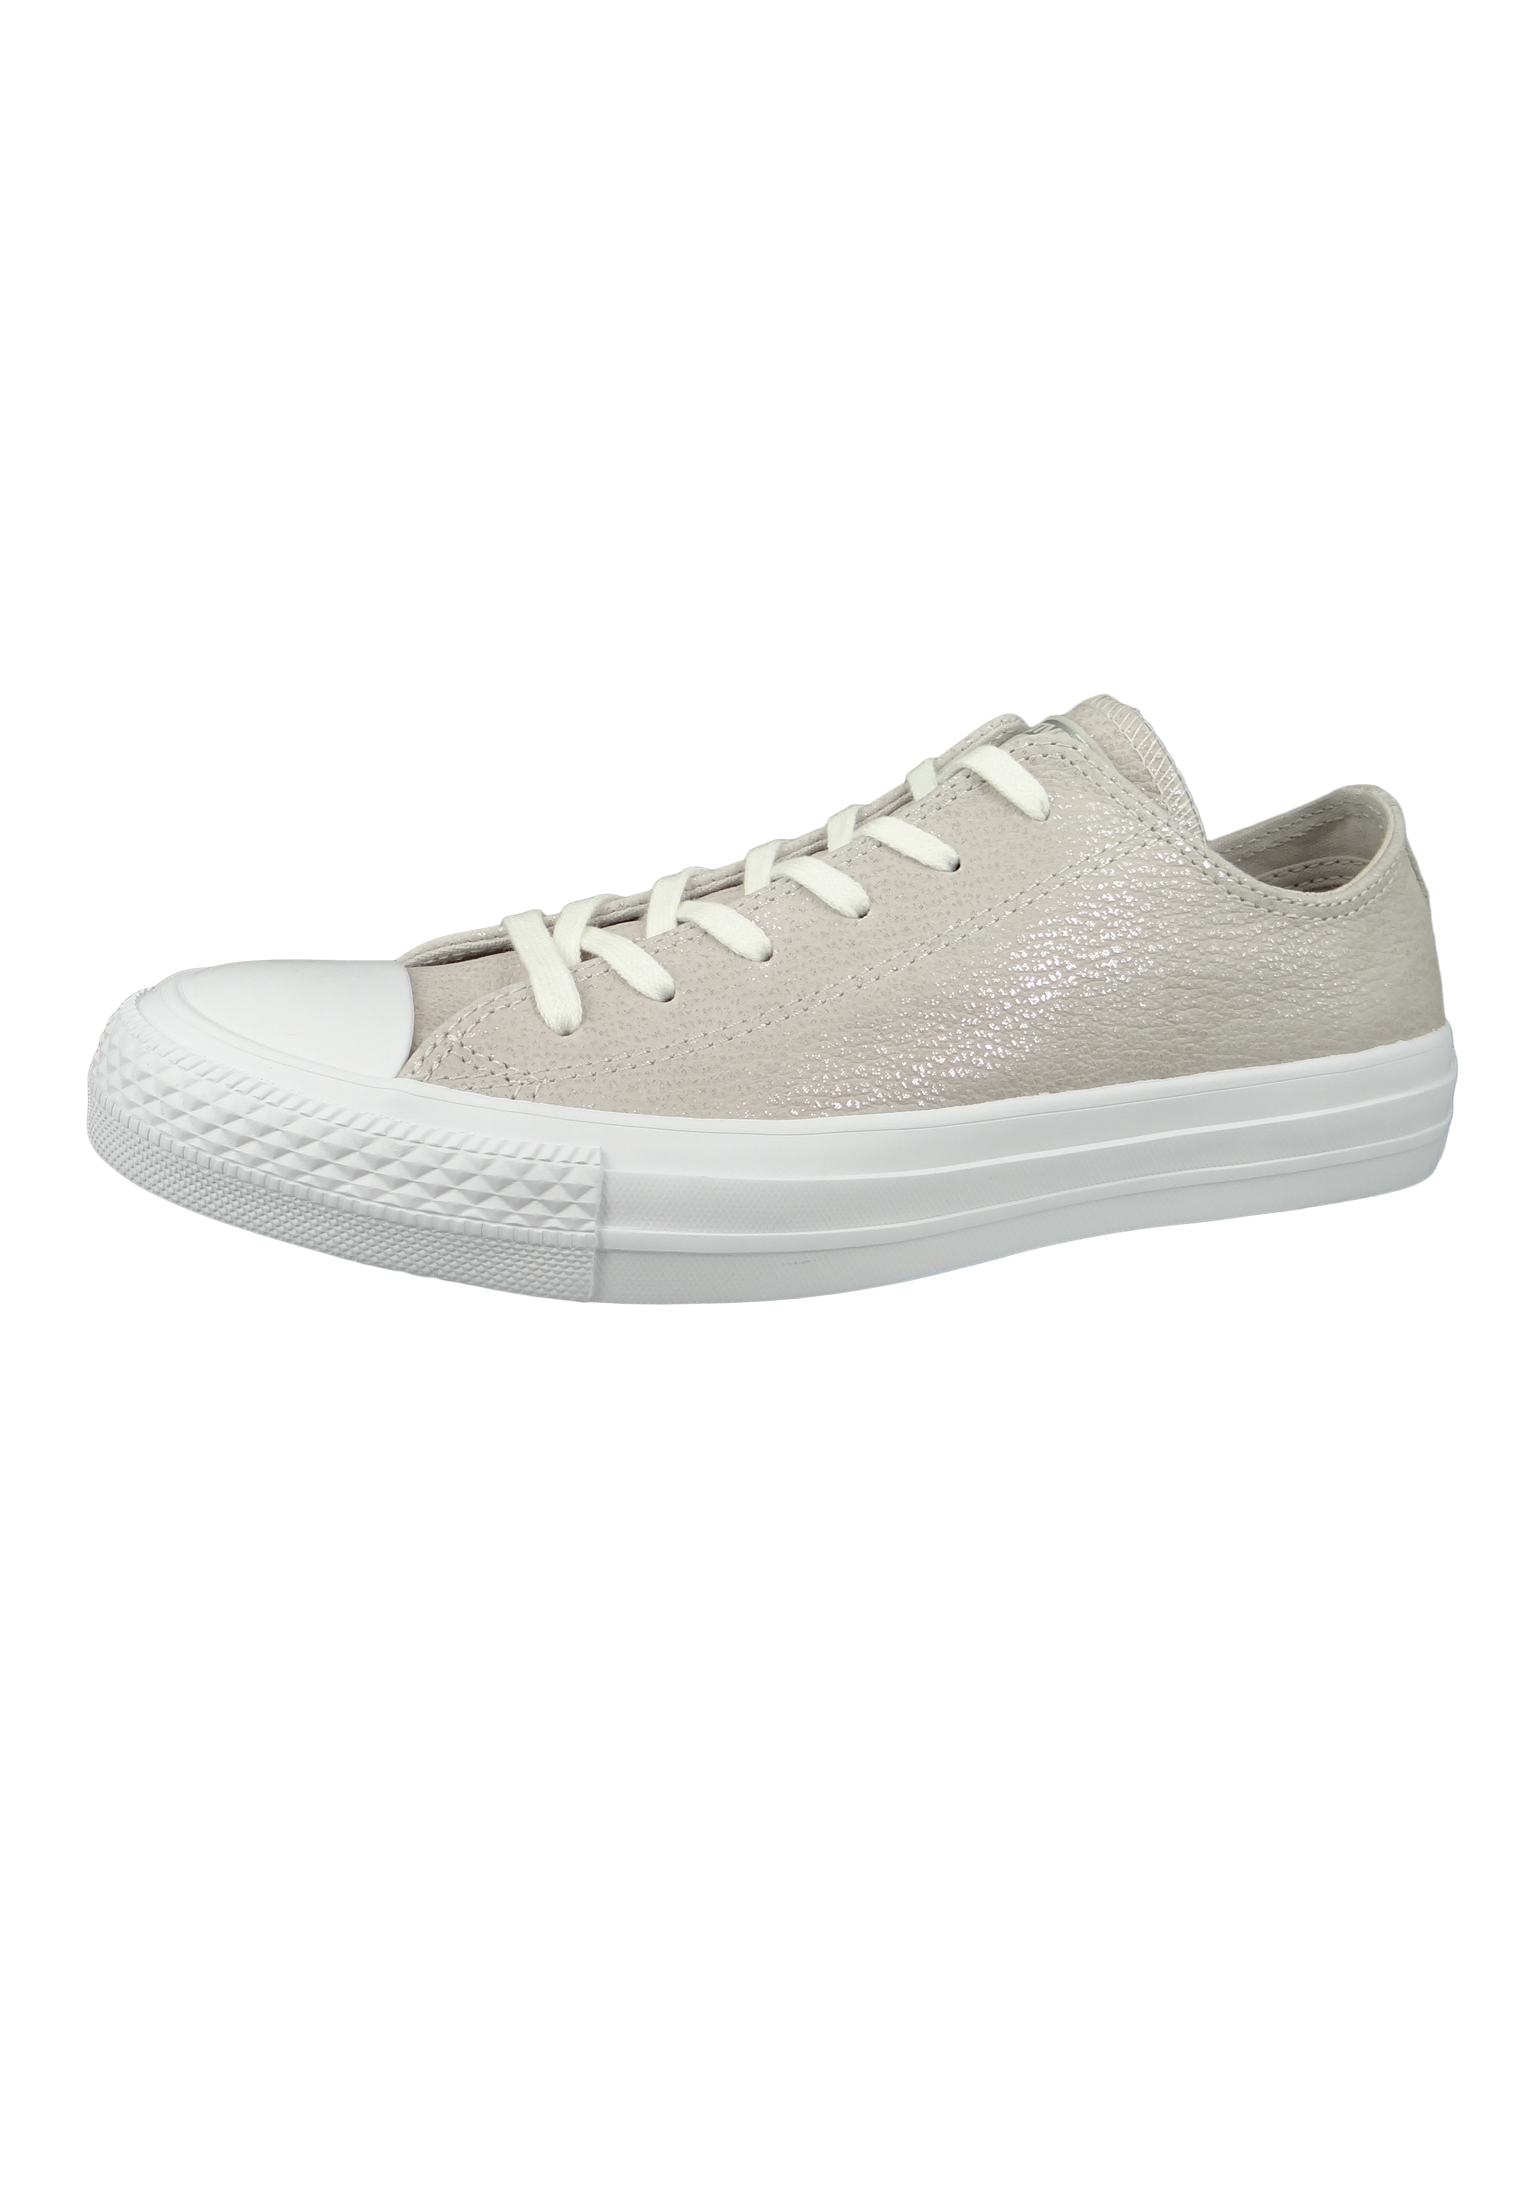 6f049190c659a ... promo code converse chucks grau 559884c chuck taylor all star ox pale  putty silver white ea64e